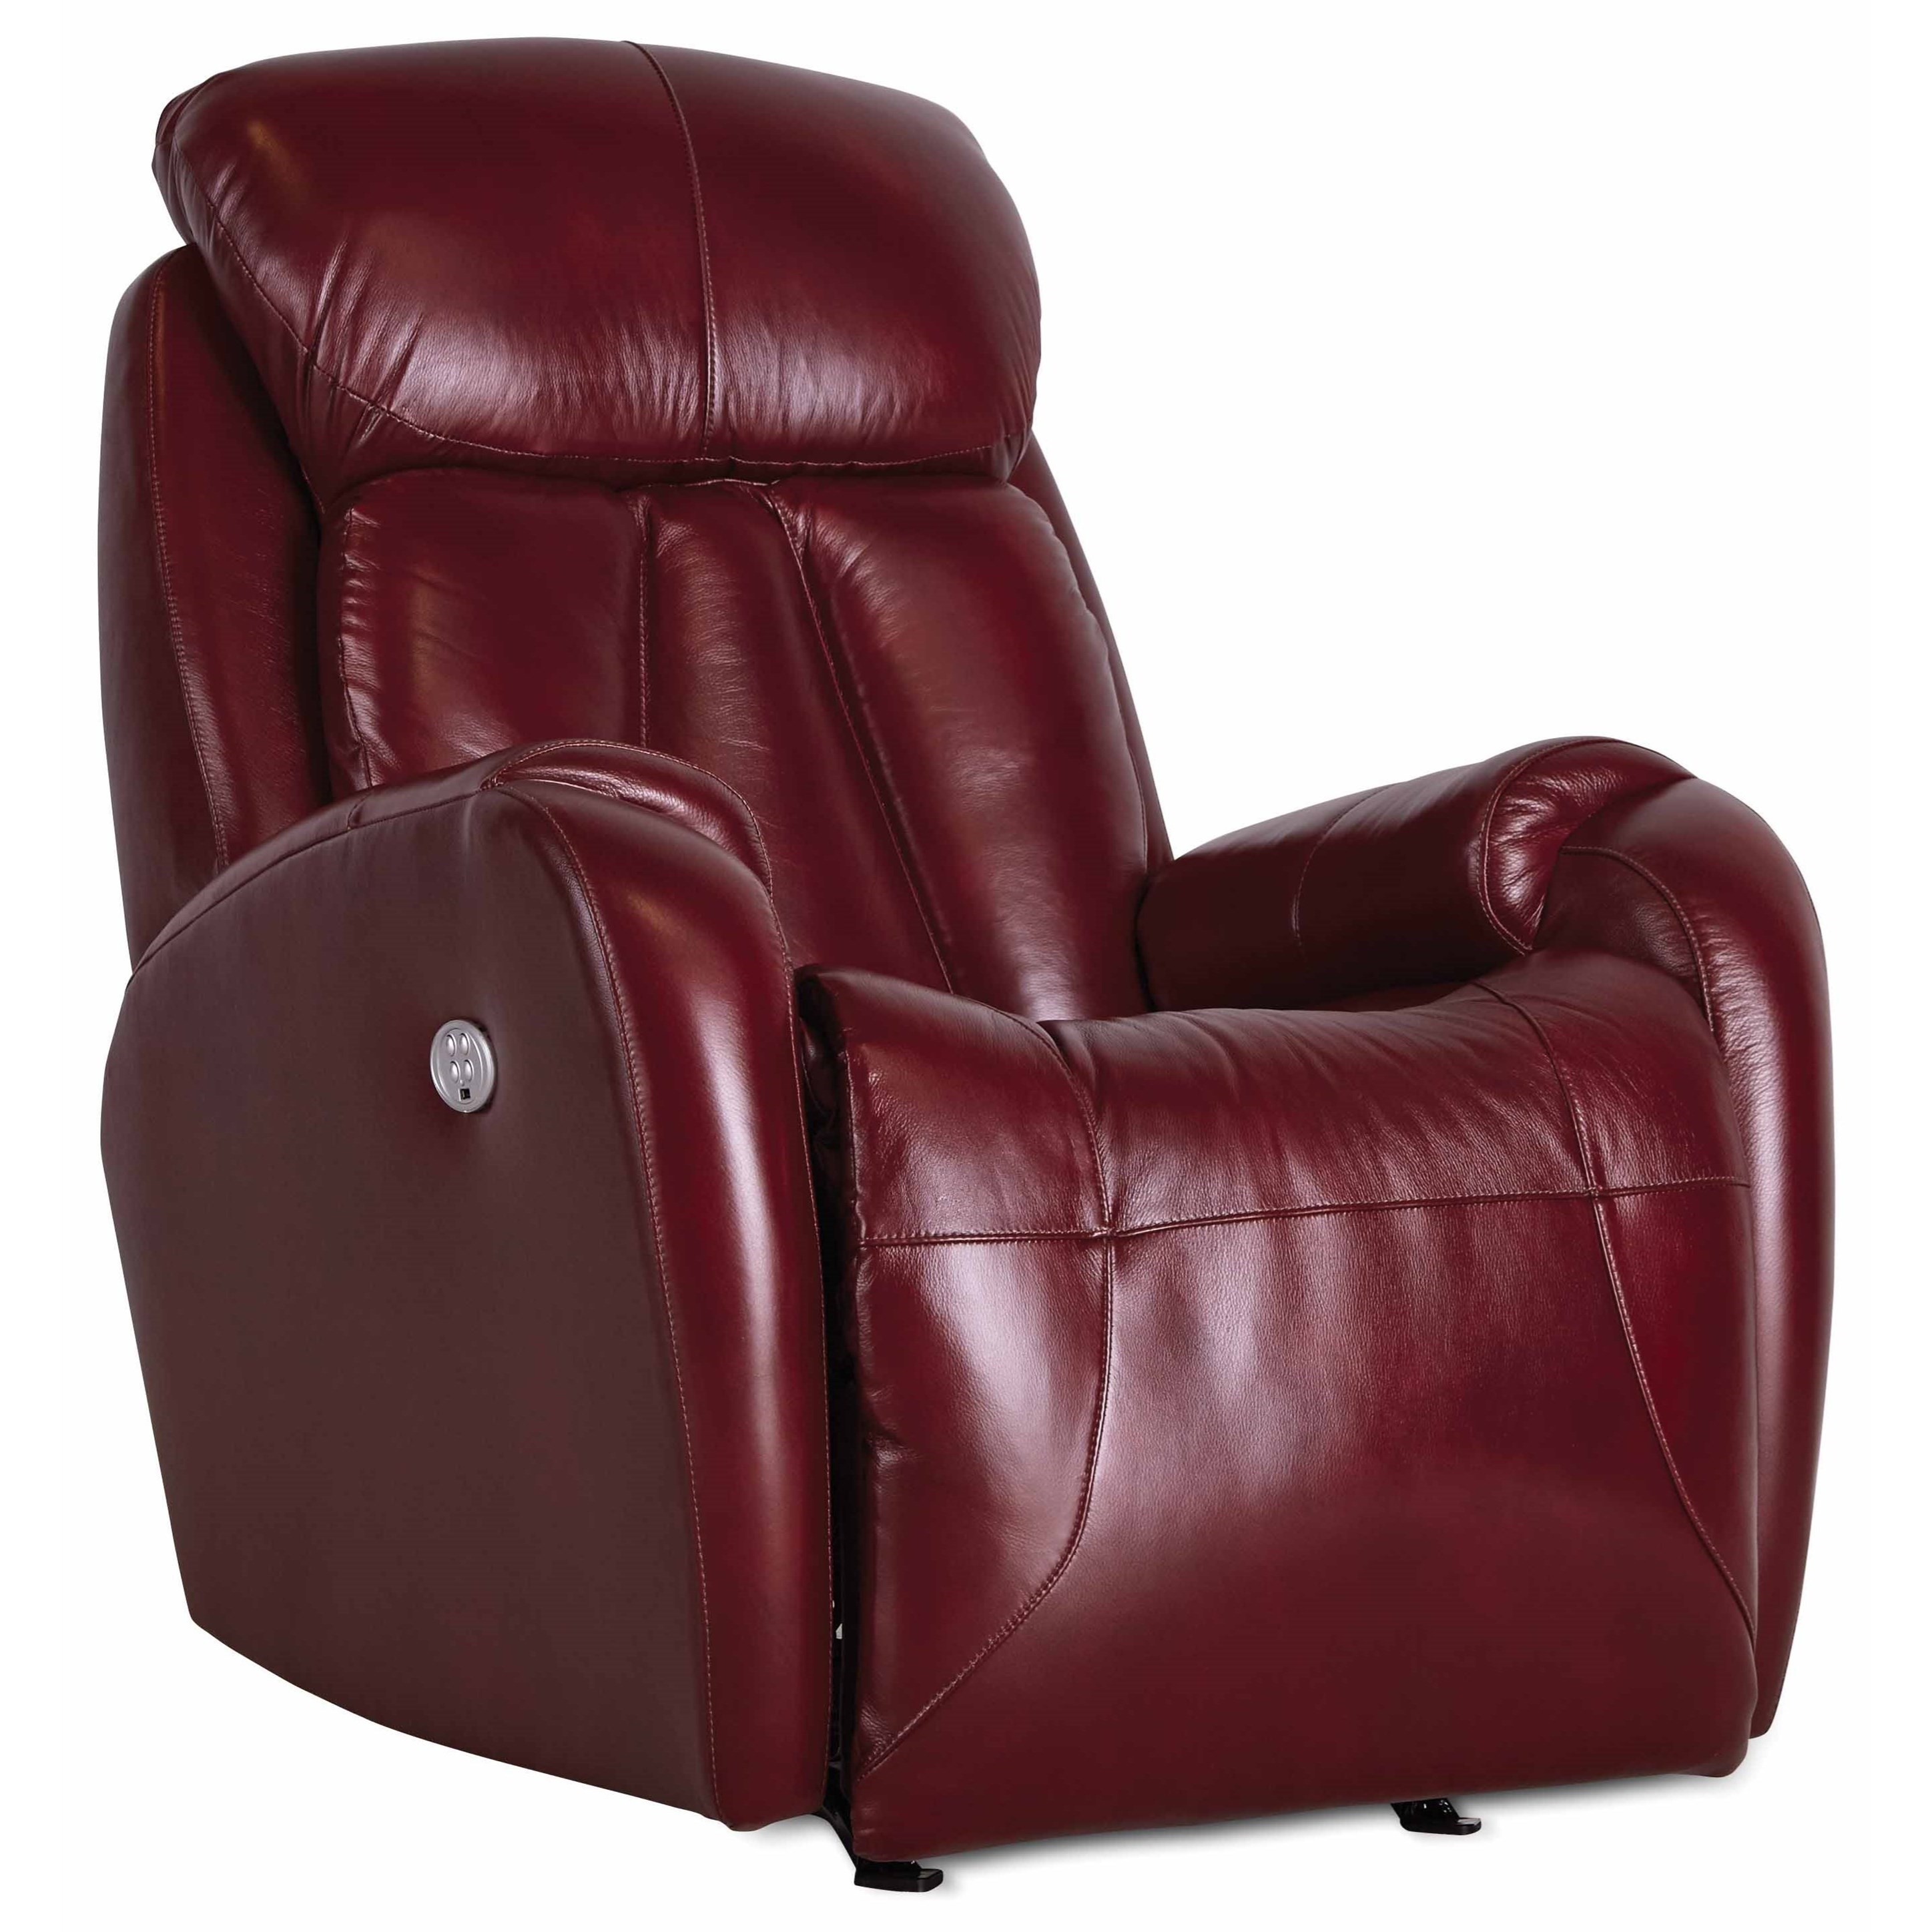 wall hugger recliner chair leather covers for sale southern motion hard rock 6135 with power rockwall headrest